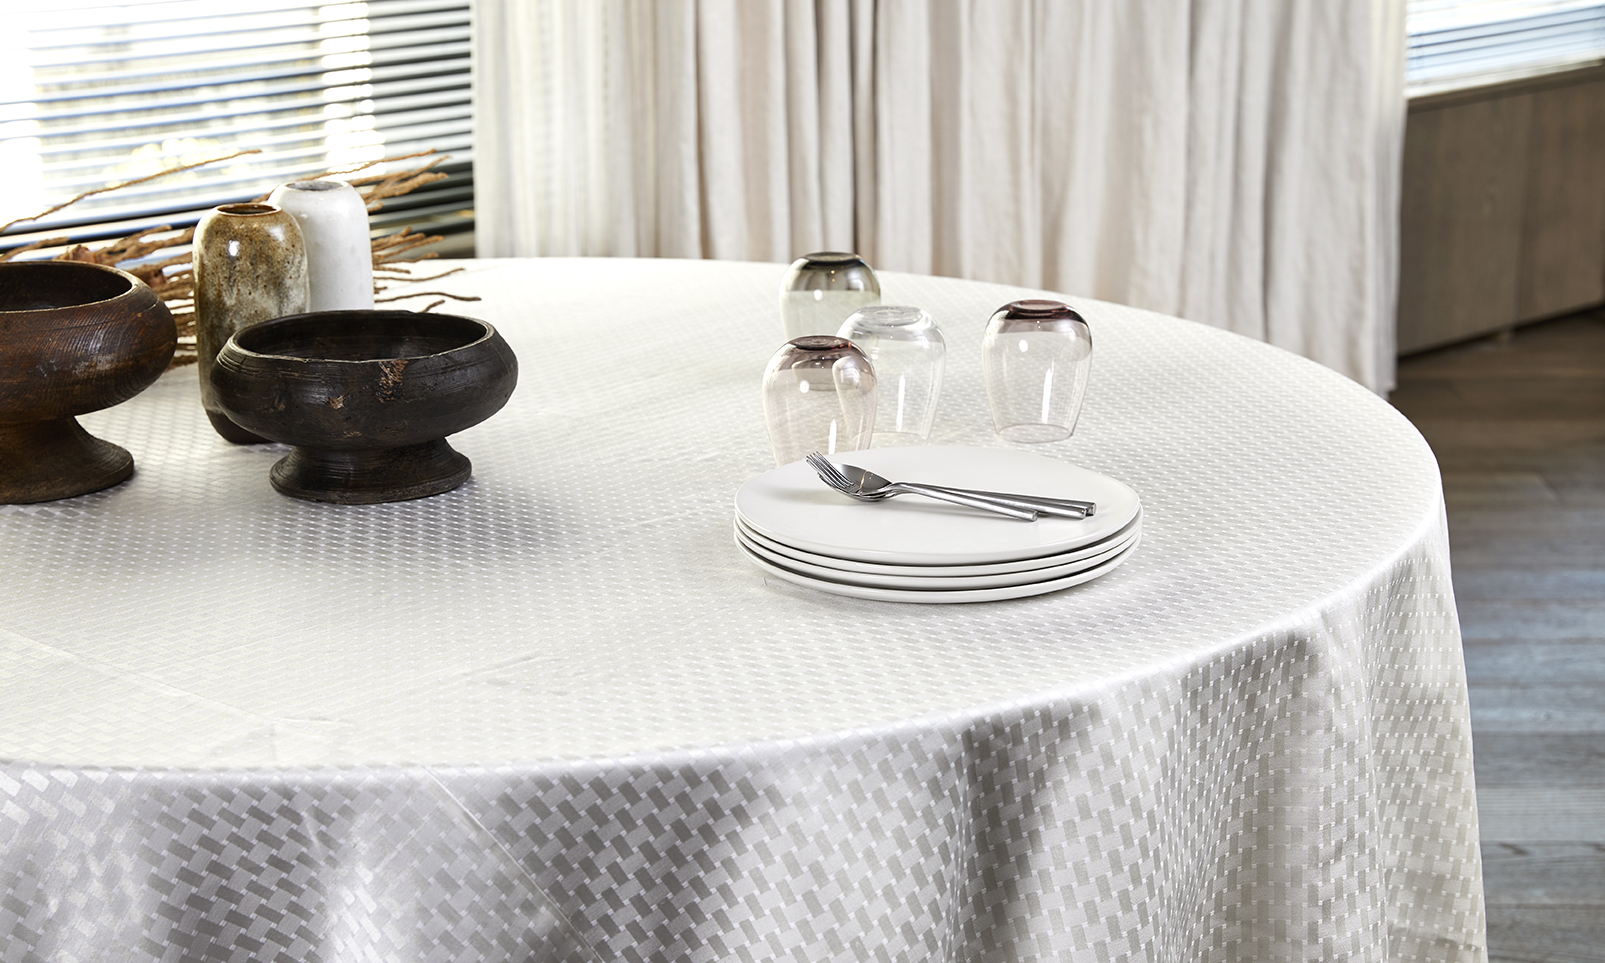 Overlays and Underlays  A unique decorative accent that adds just the right touch of personality and elegance to your table.   Learn More...